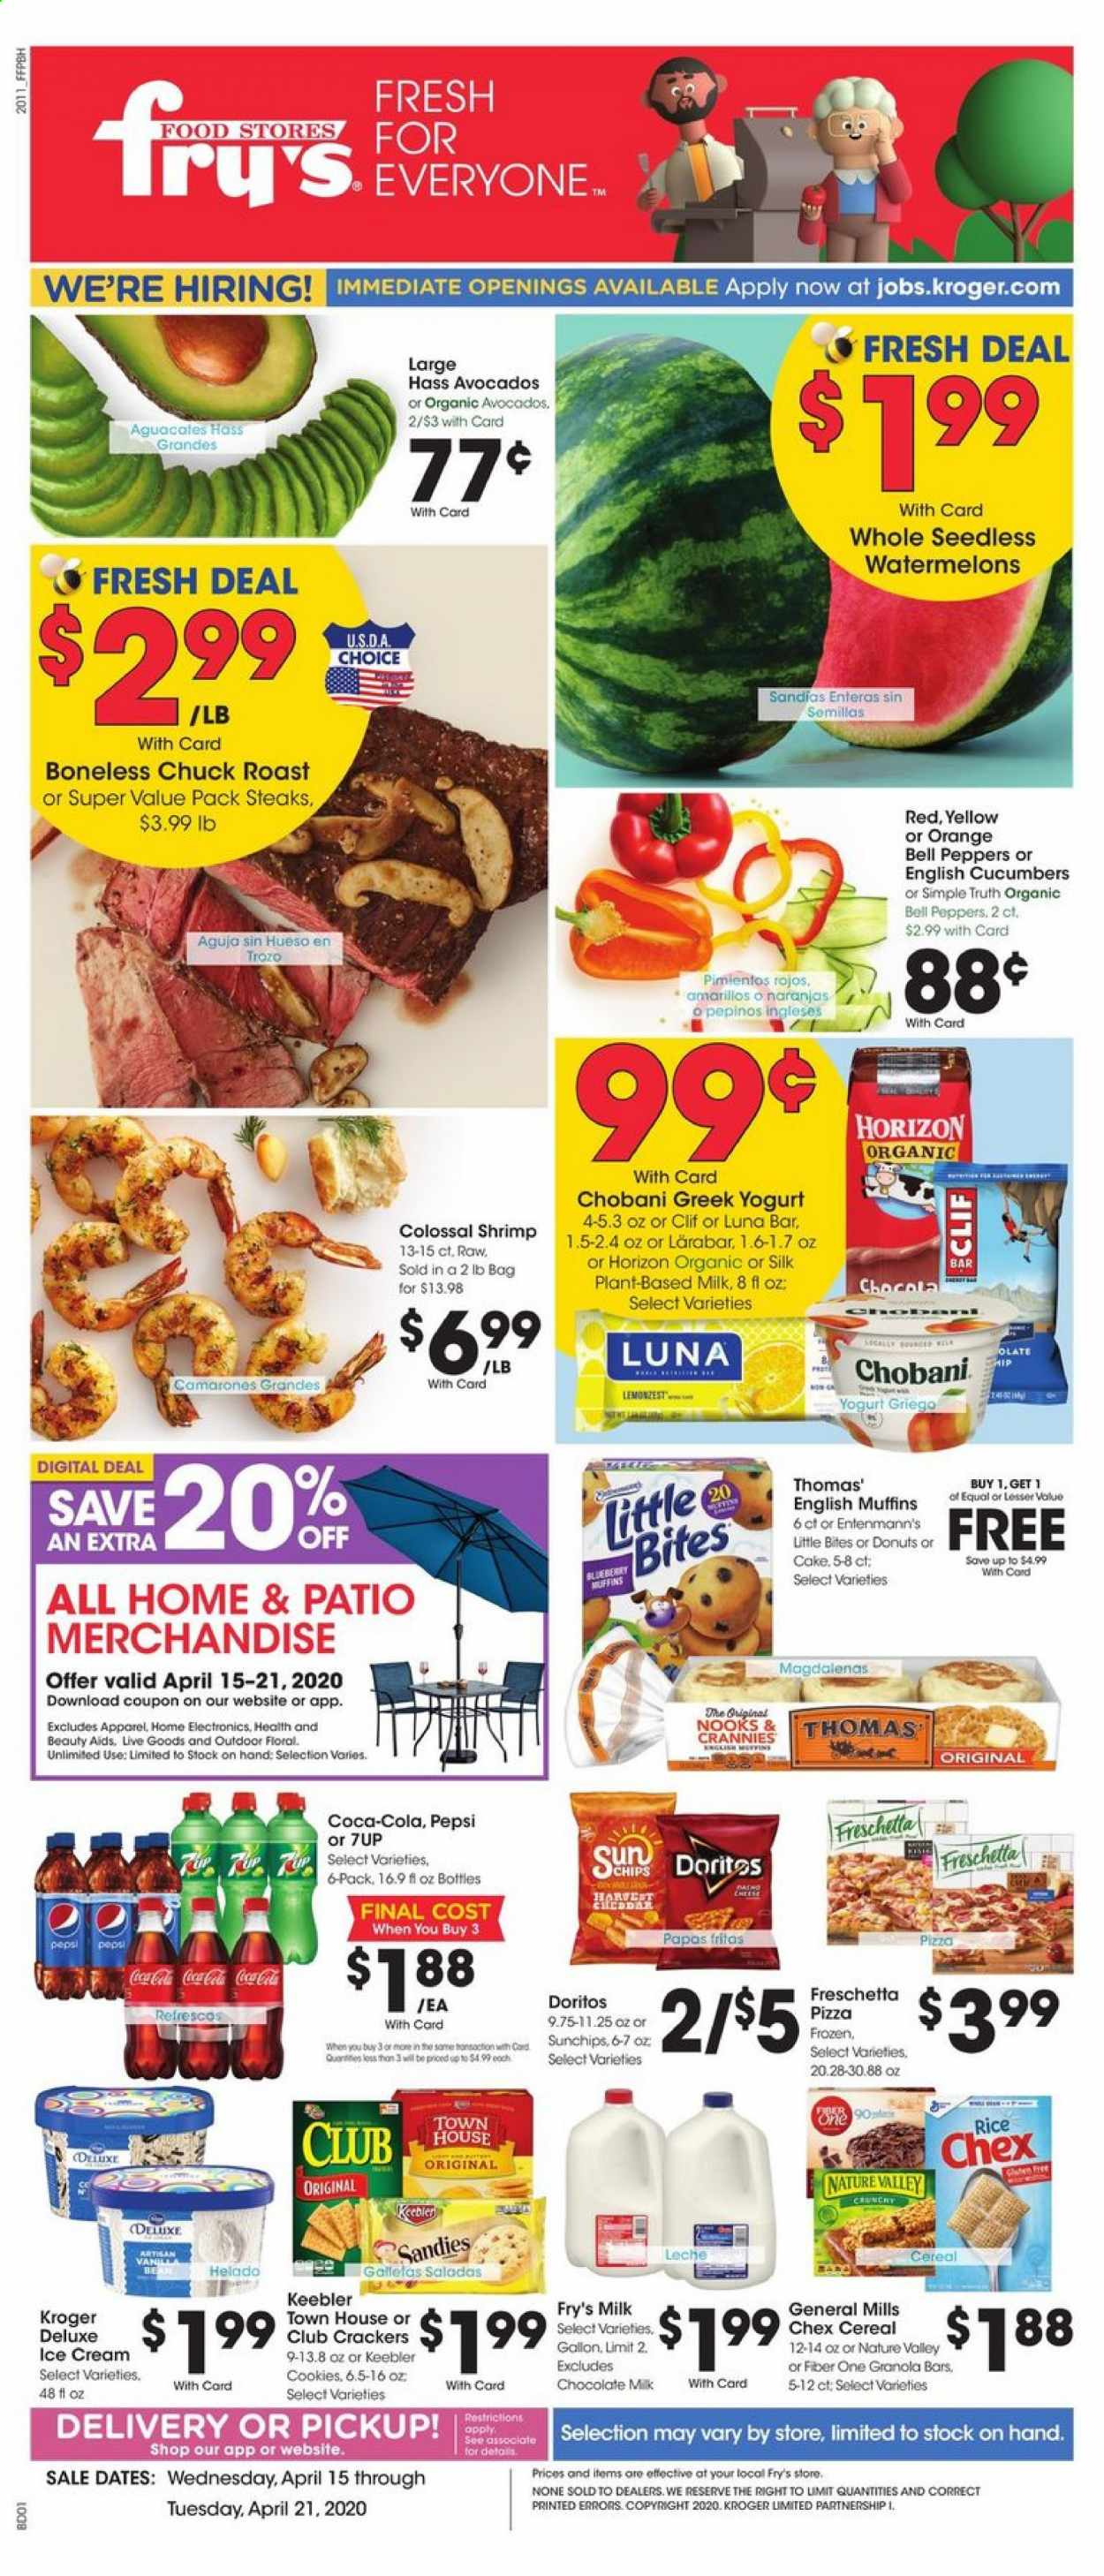 Fry's Flyer - 04.15.2020 - 04.21.2020 - Sales products - bell peppers, cucumbers, peppers, avocado, orange, cake, donut, muffin, shrimps, english muffins, pizza, greek yoghurt, milk, chocolate milk, ice cream, cookies, chocolate, cracker, crackers, Doritos, chips, cereals, granola, granola bar, rice, Coca-Cola, Pepsi, Frozen, granola bars, muffins. Page 1.